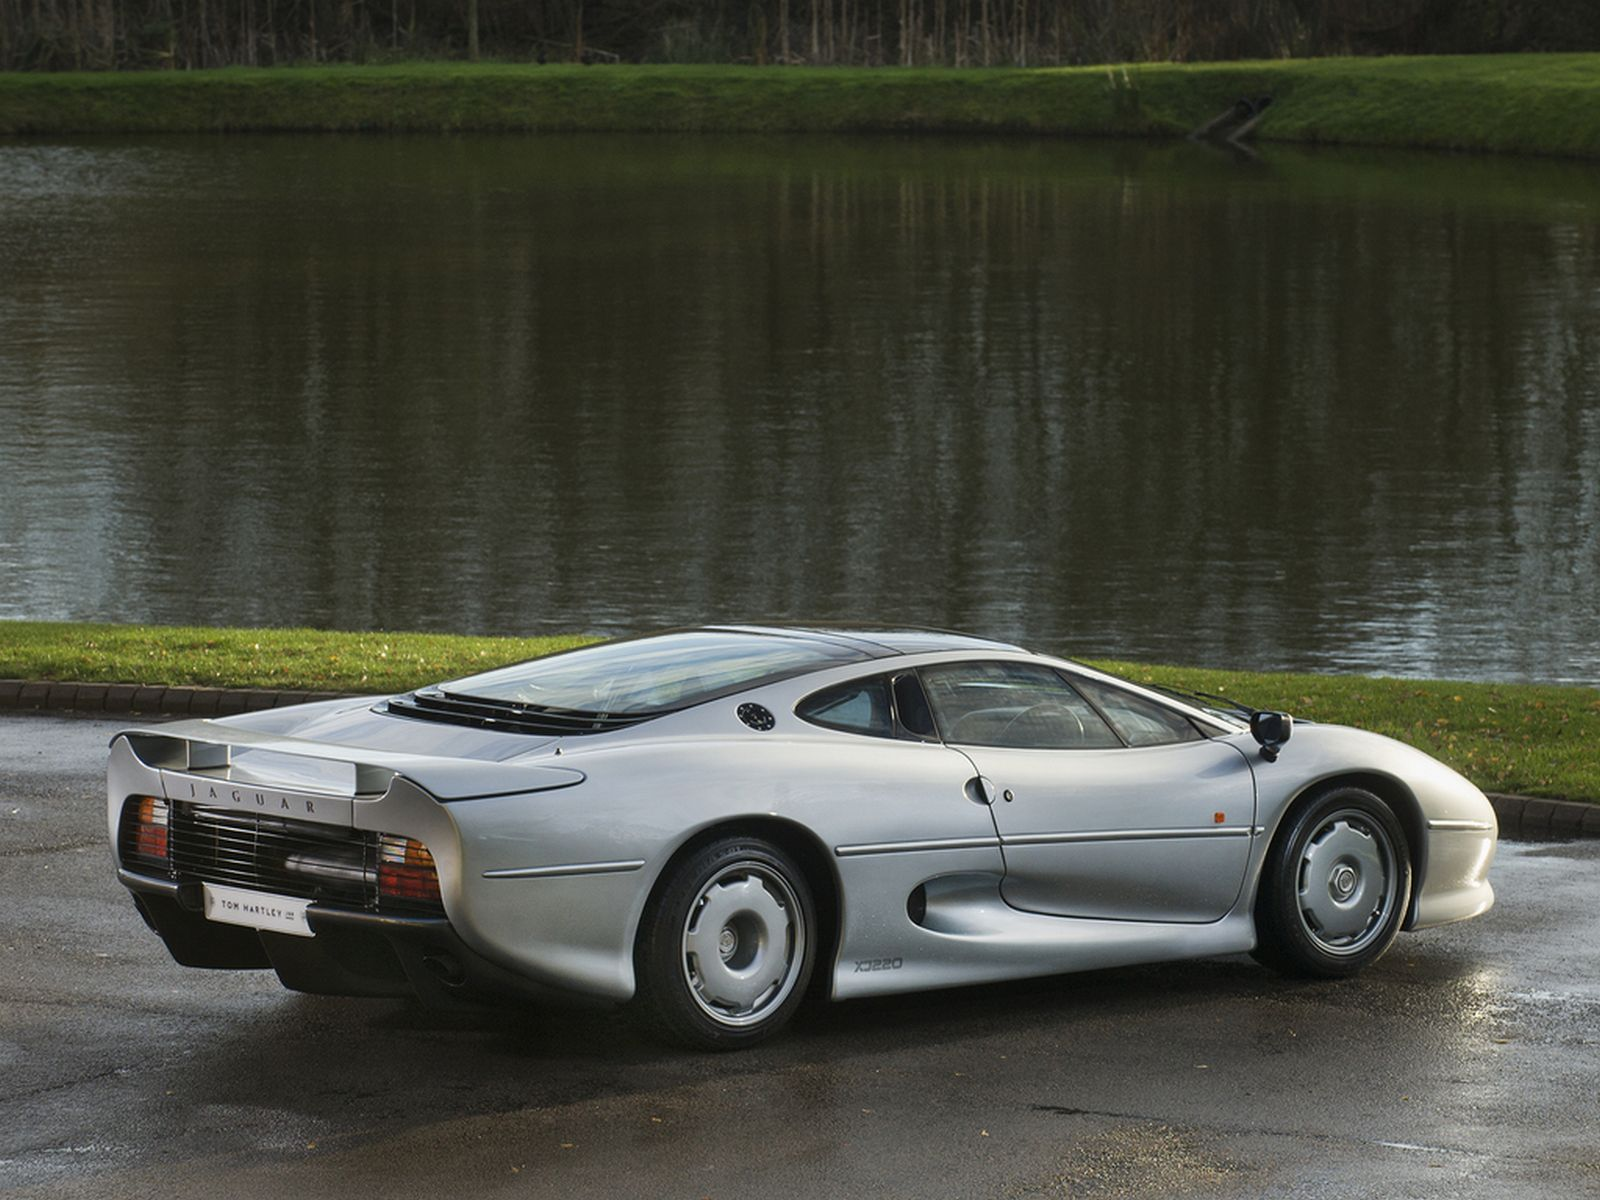 Stunning Silver Jaguar Xj220 Available For Purchase In The